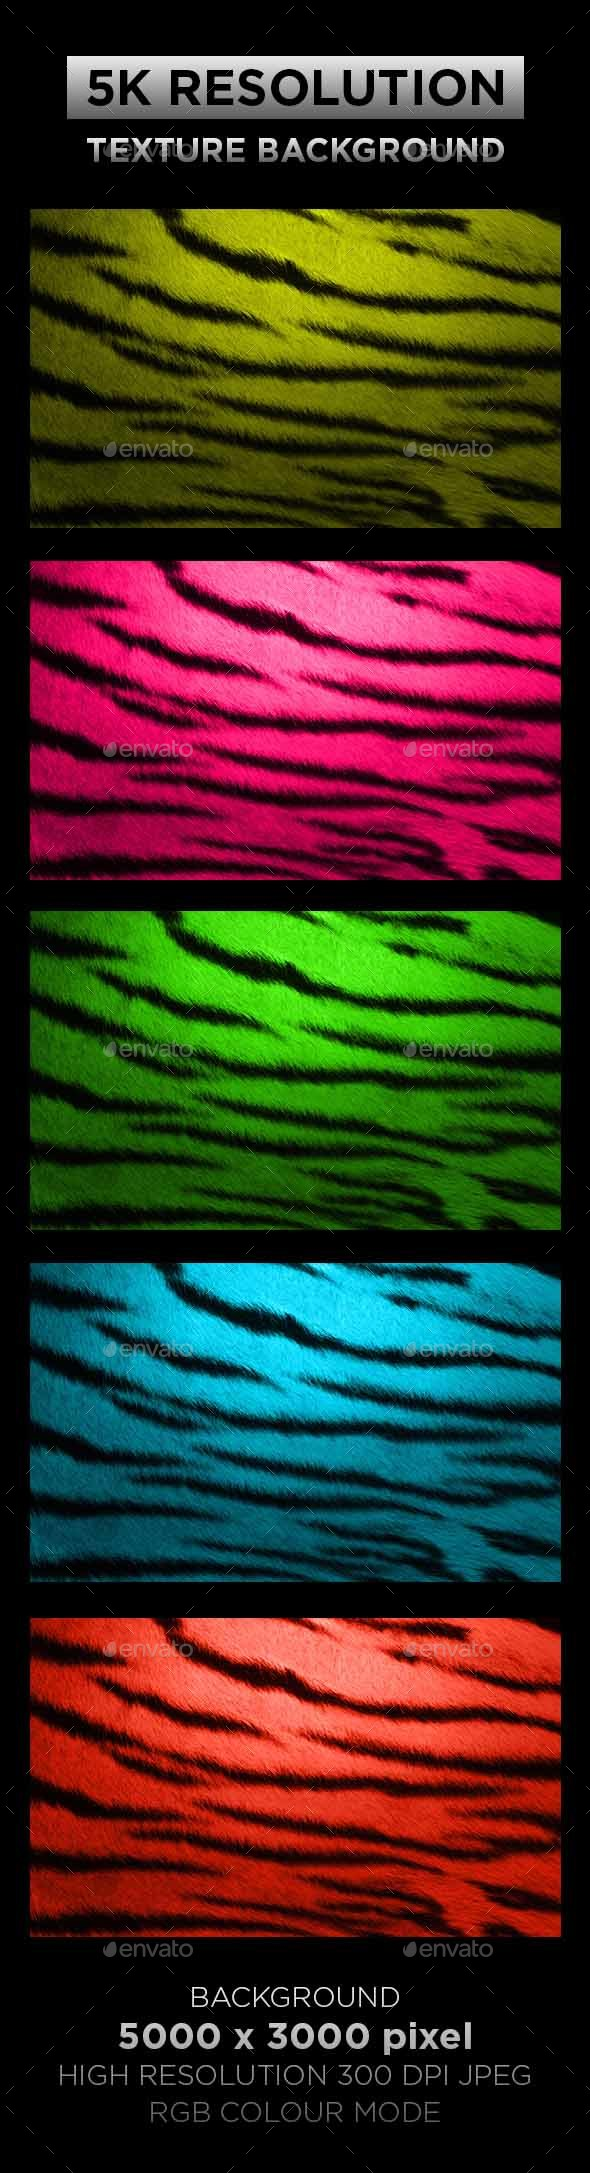 Tiger Texture Background 002 - Backgrounds Graphics